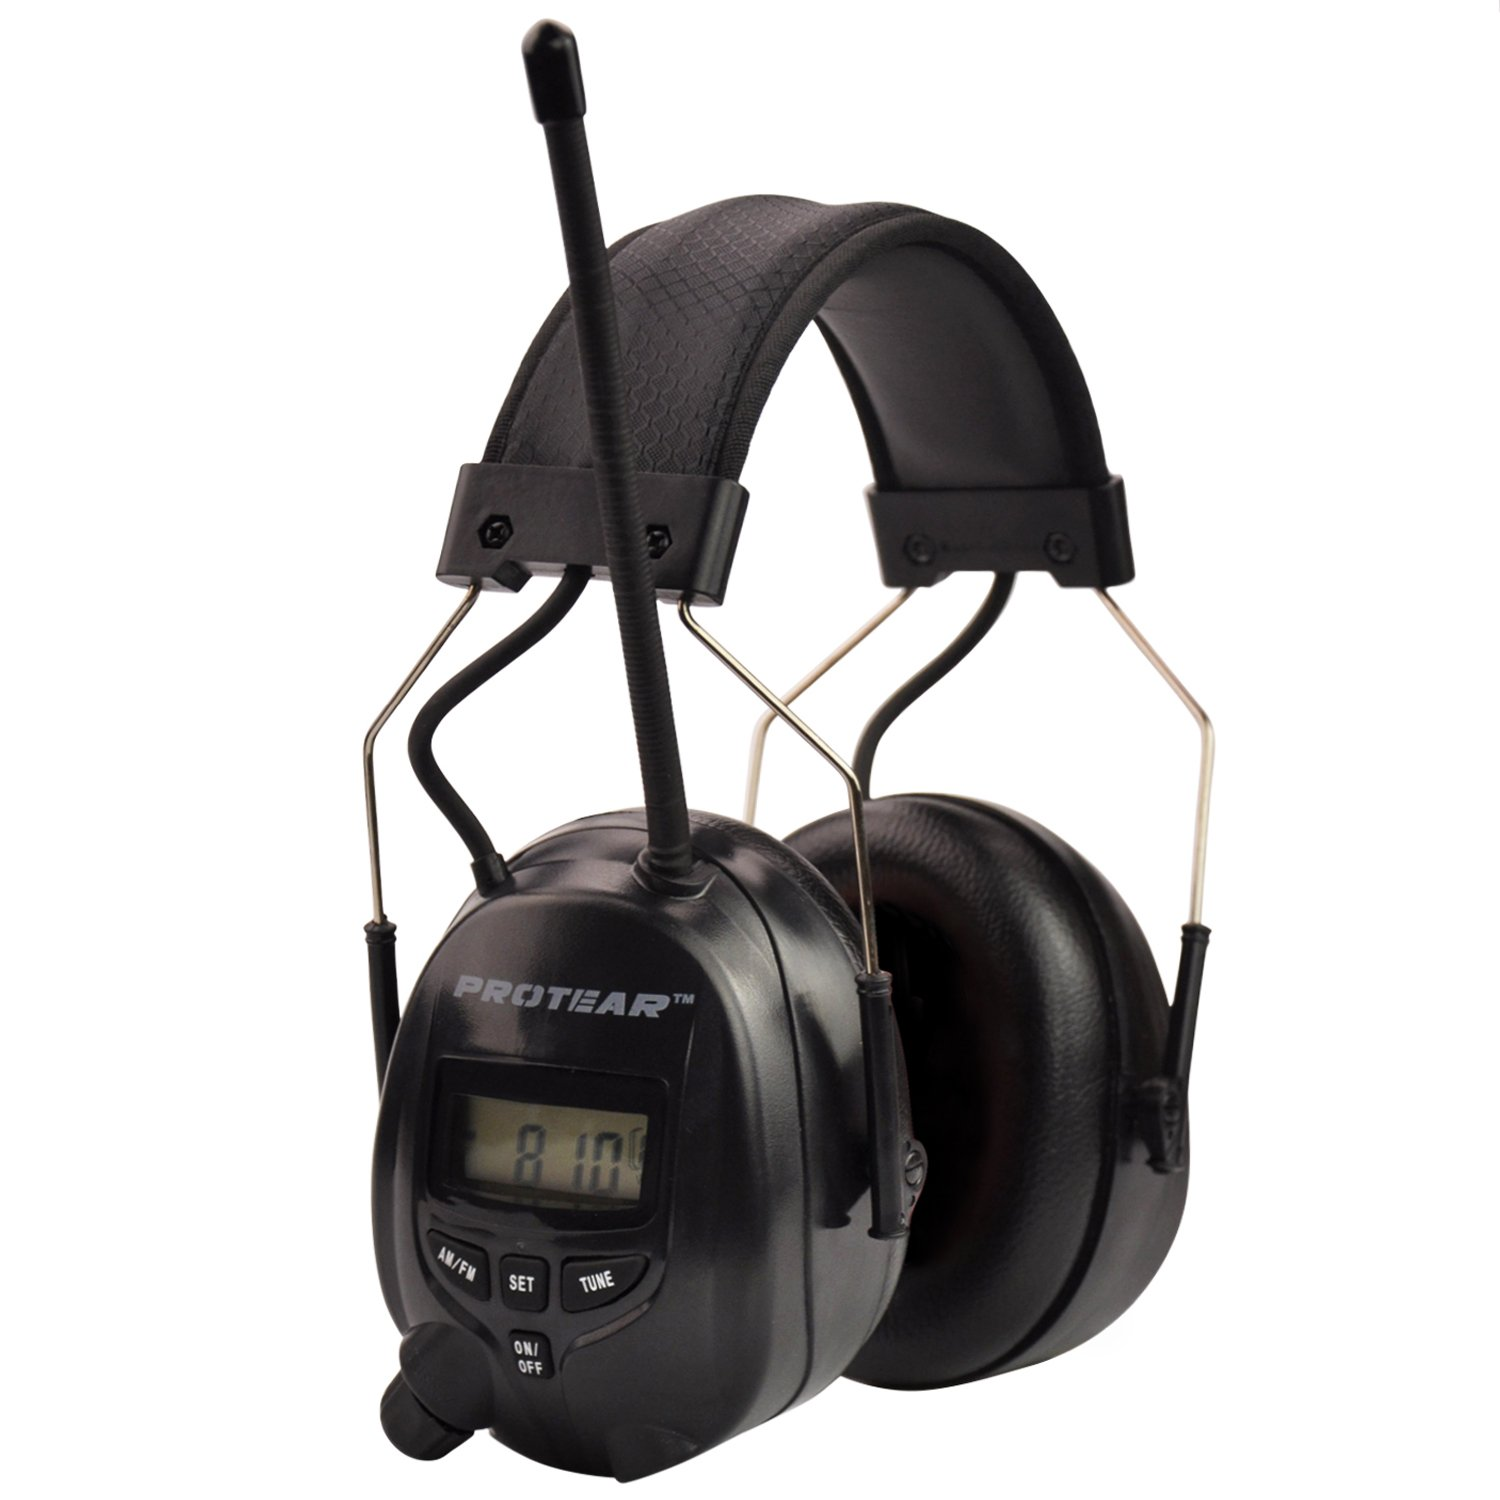 Protear Radio Headphones Hearing Protector Safety Earmuffs AM/FM Electronic Noise Reduction Rate 25dB for Mowing Working-Black